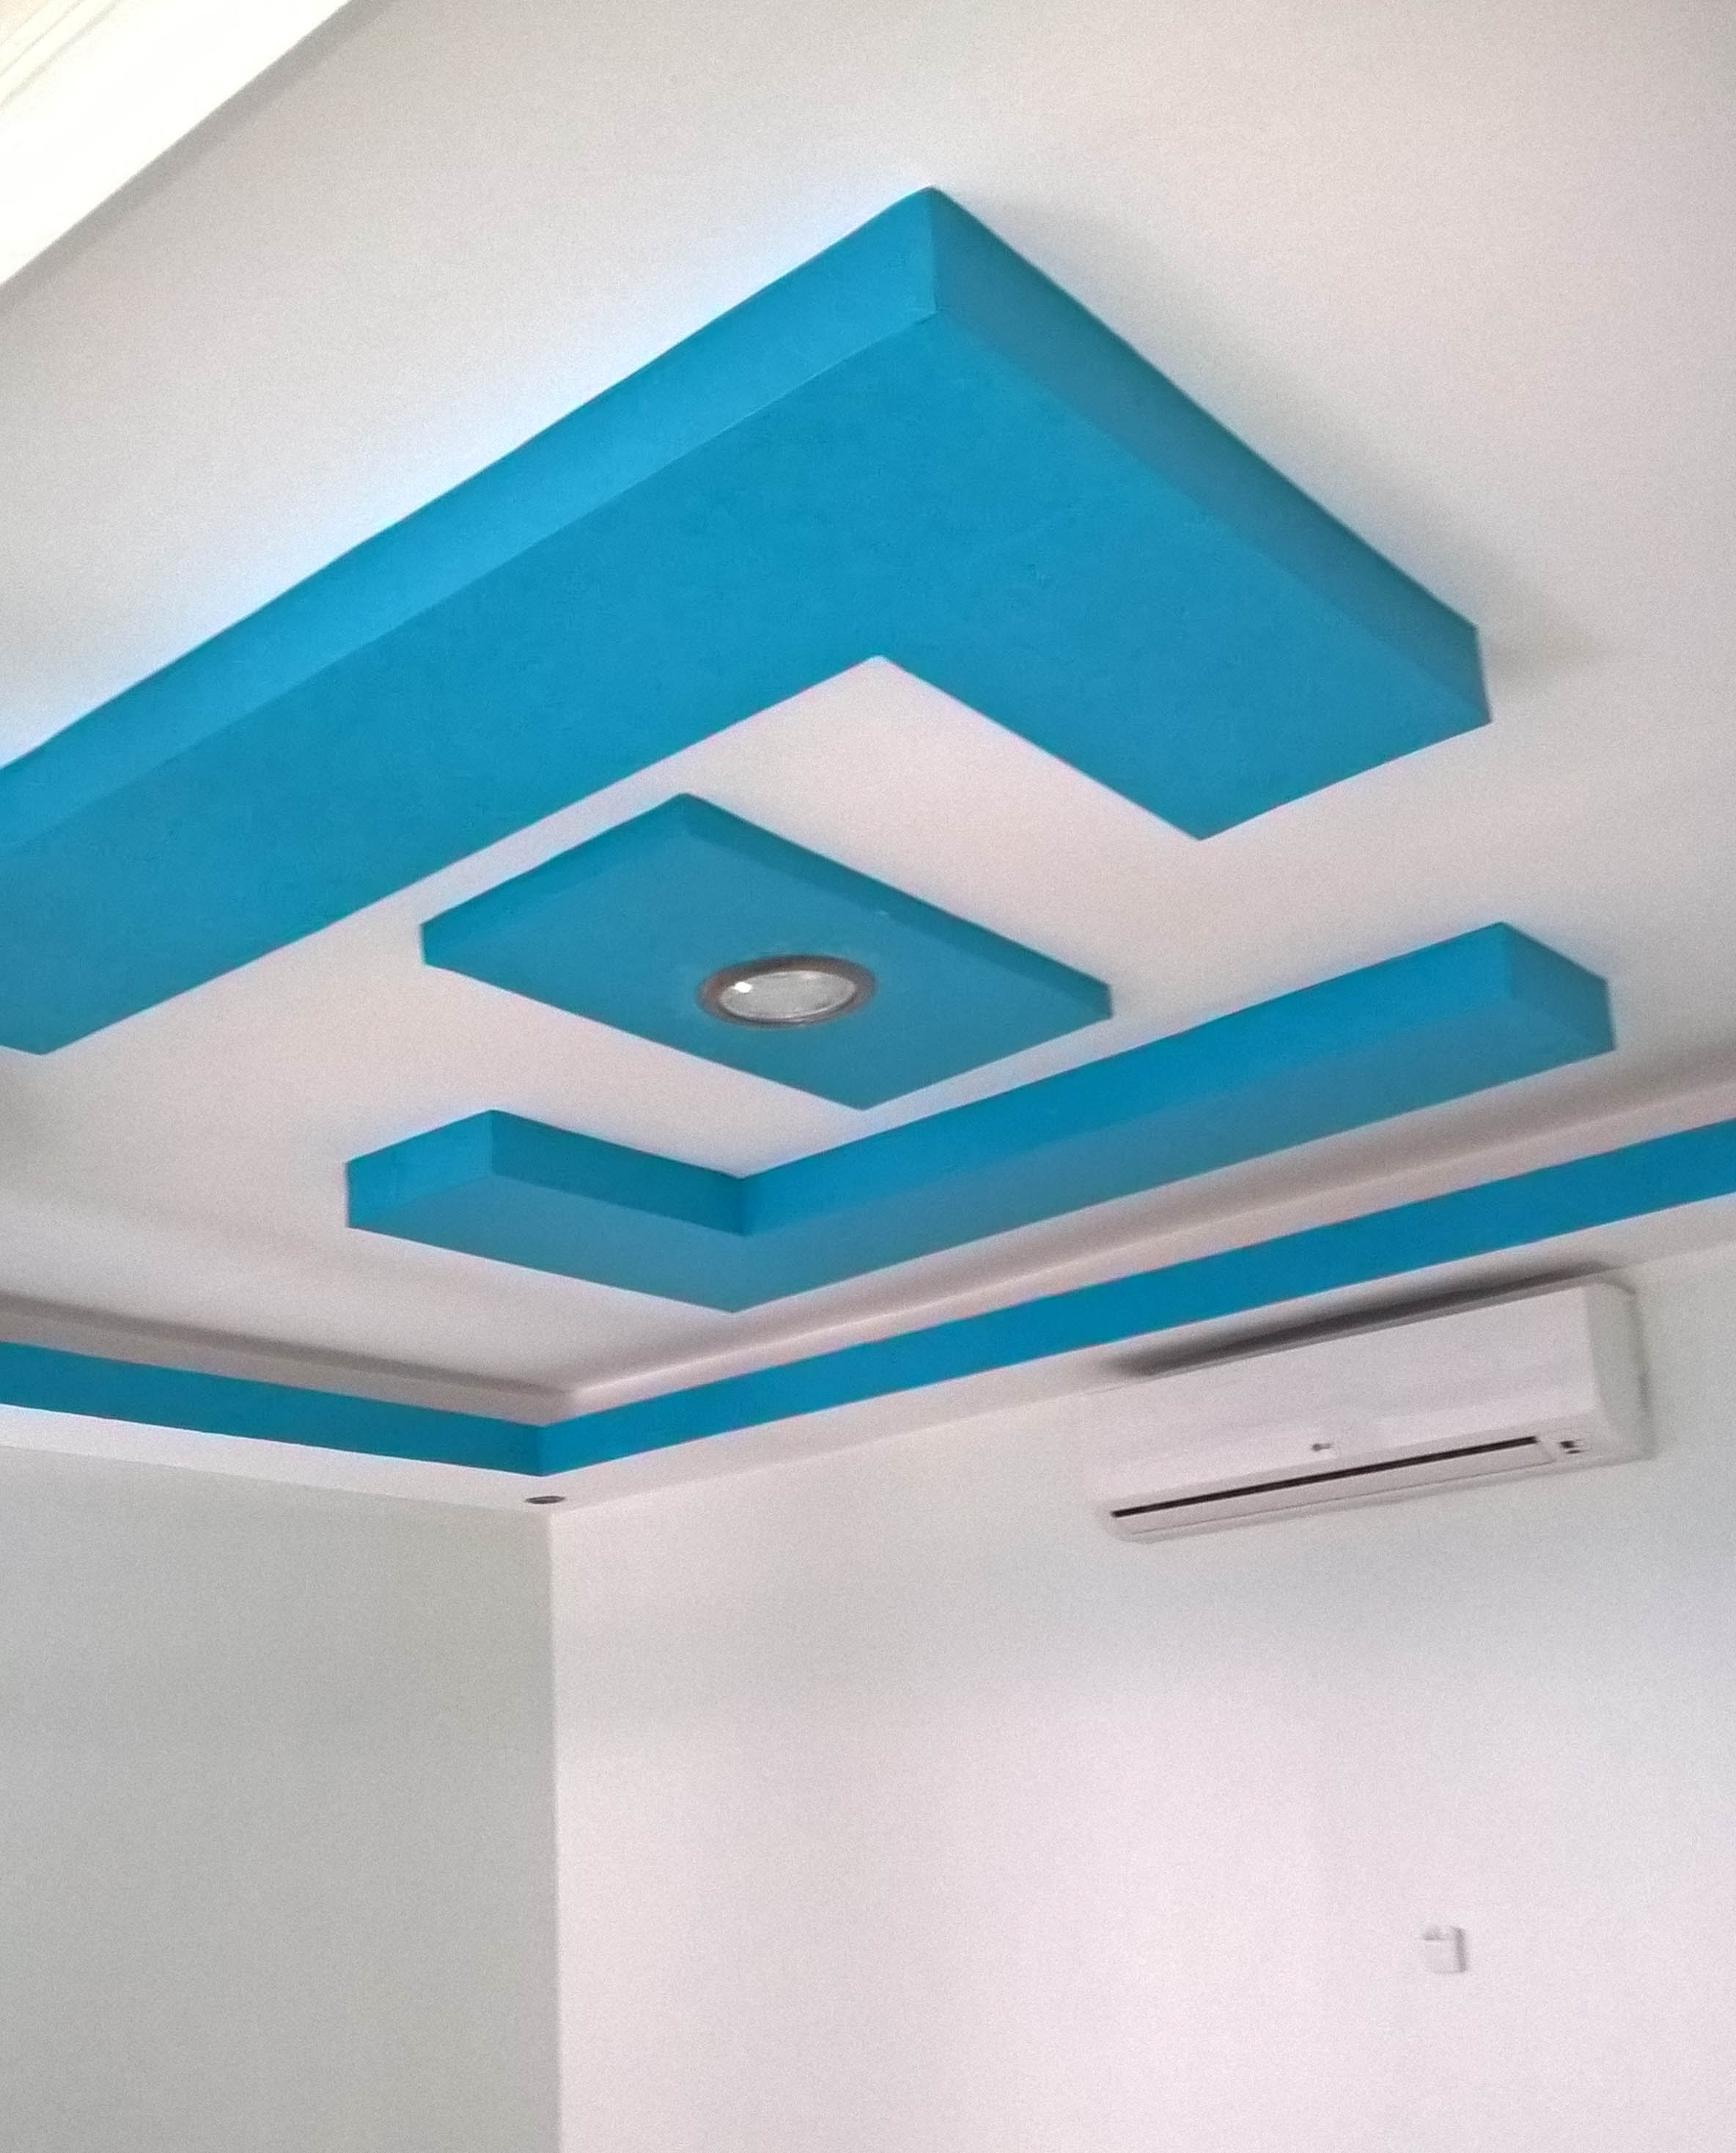 GYPSUM CEILING AT THE RECEPTION-ECO LAB